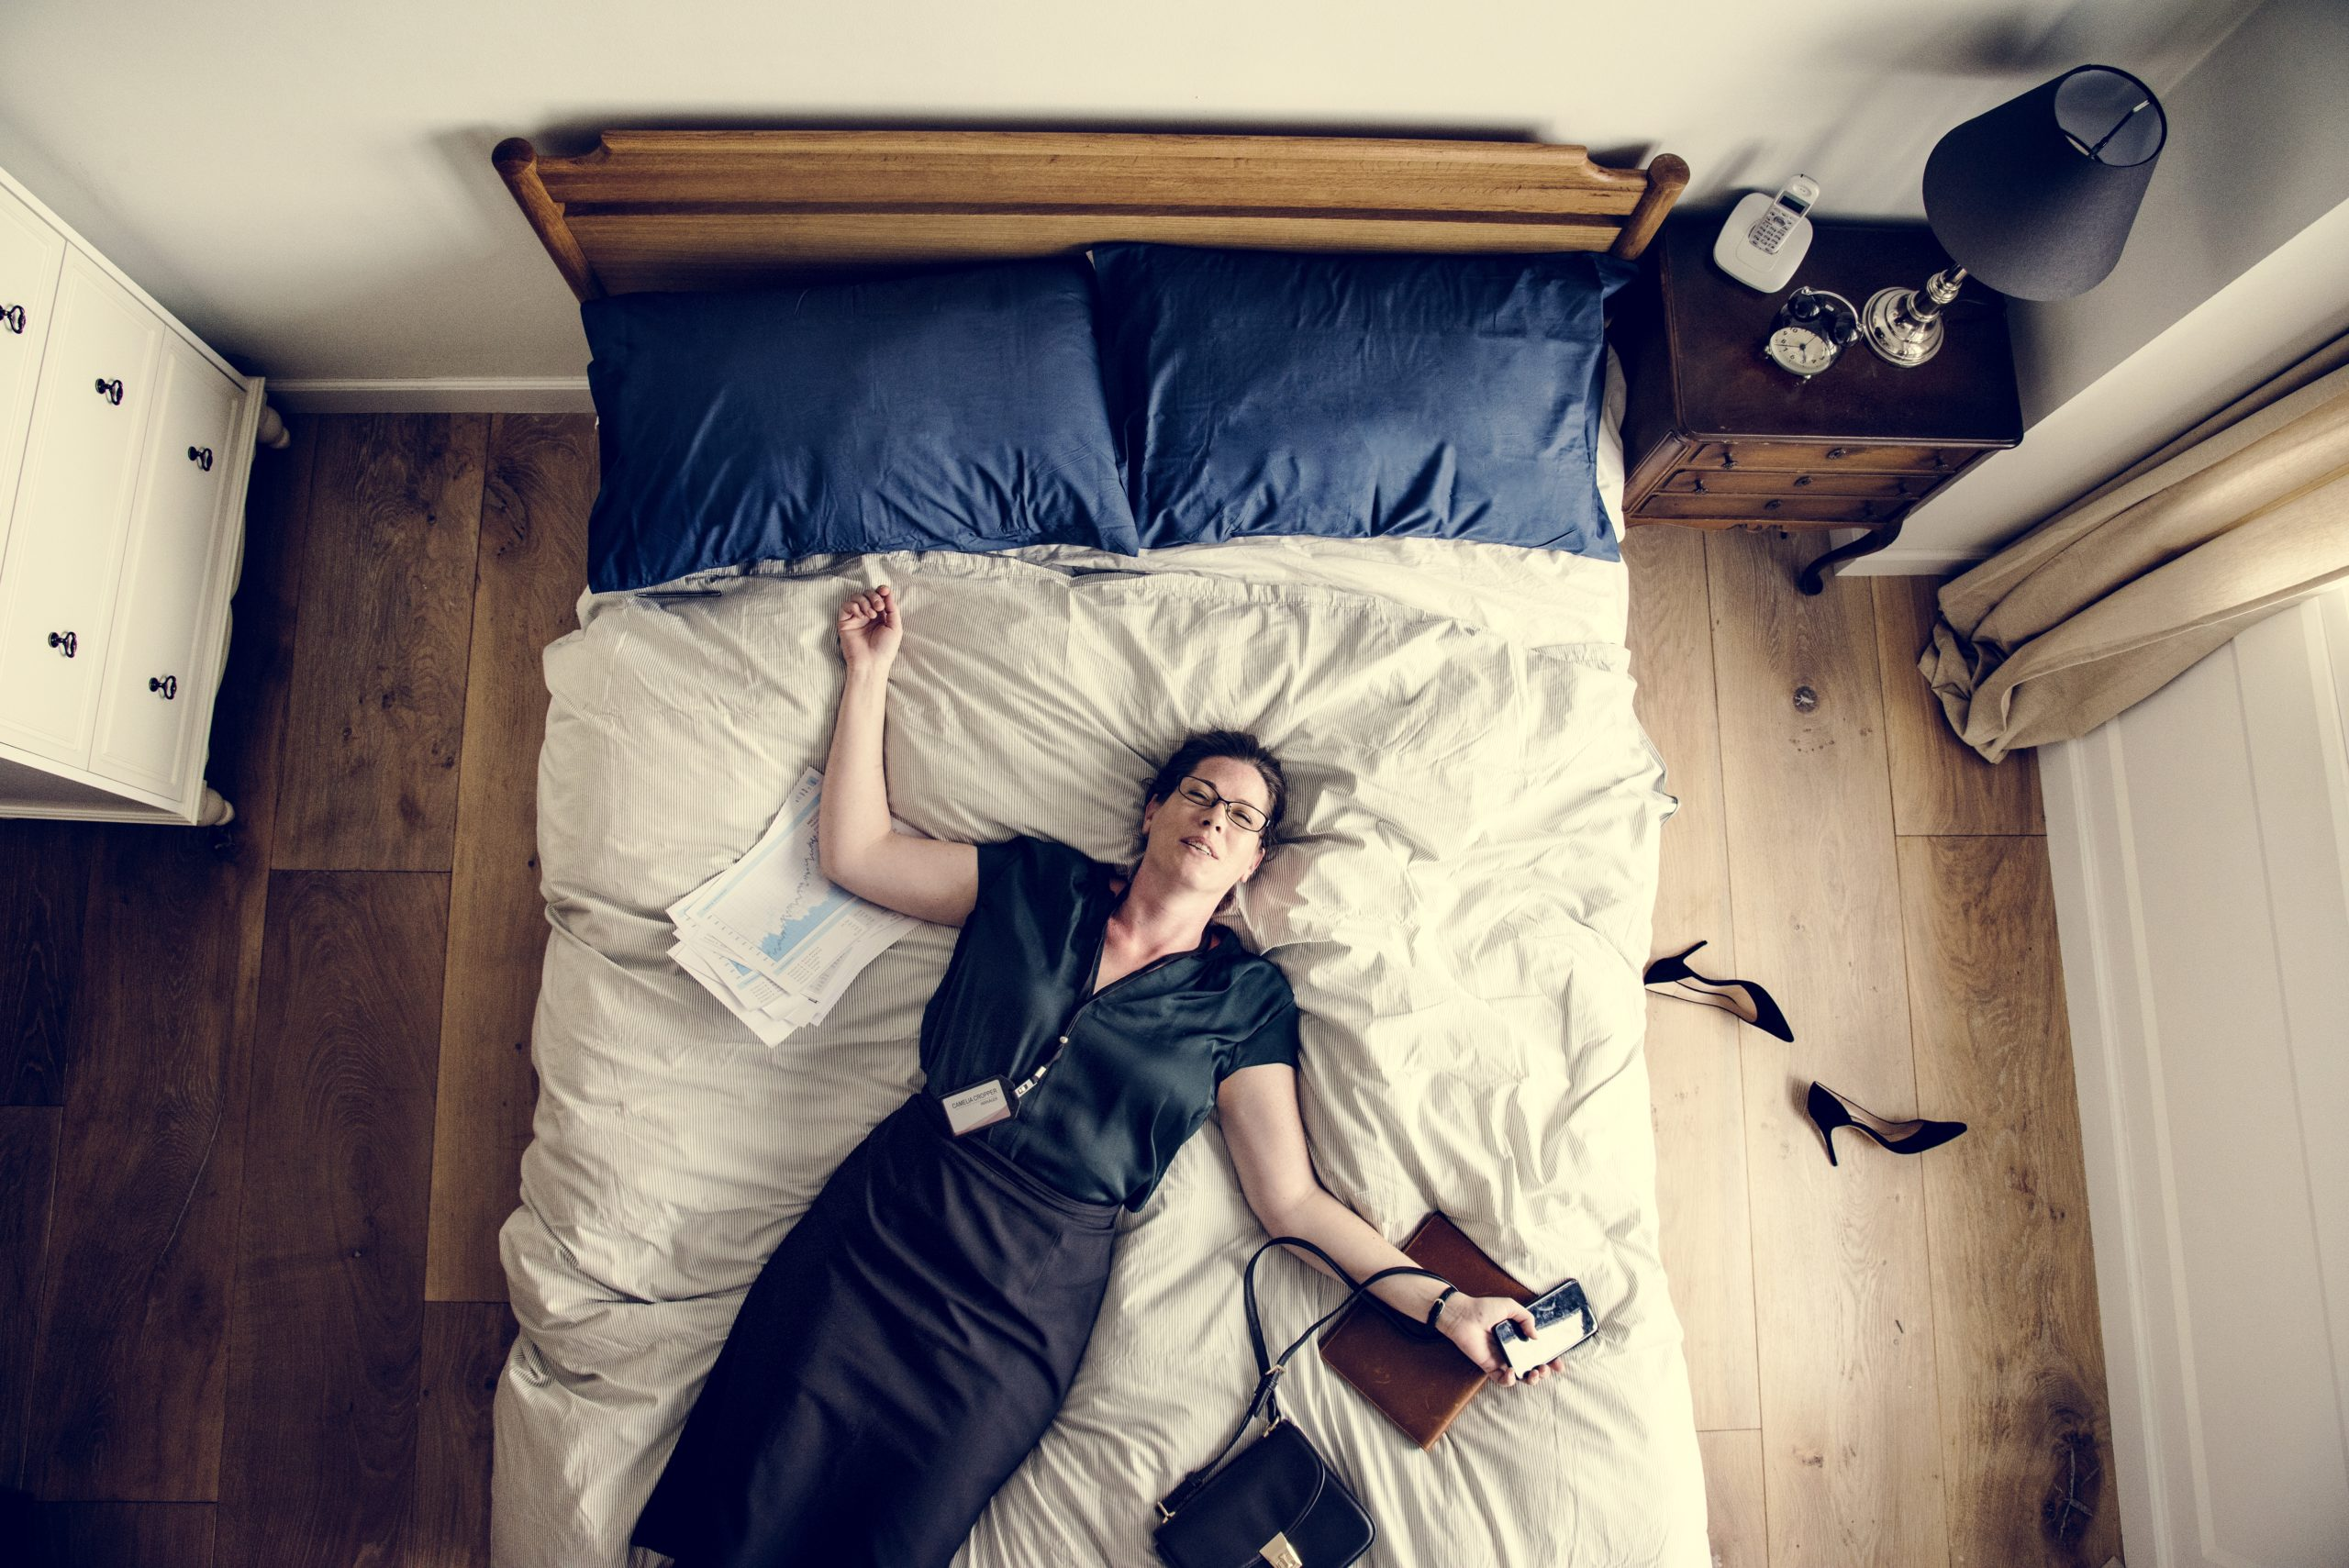 Exhausted business woman falling asleep as soon as she came back home